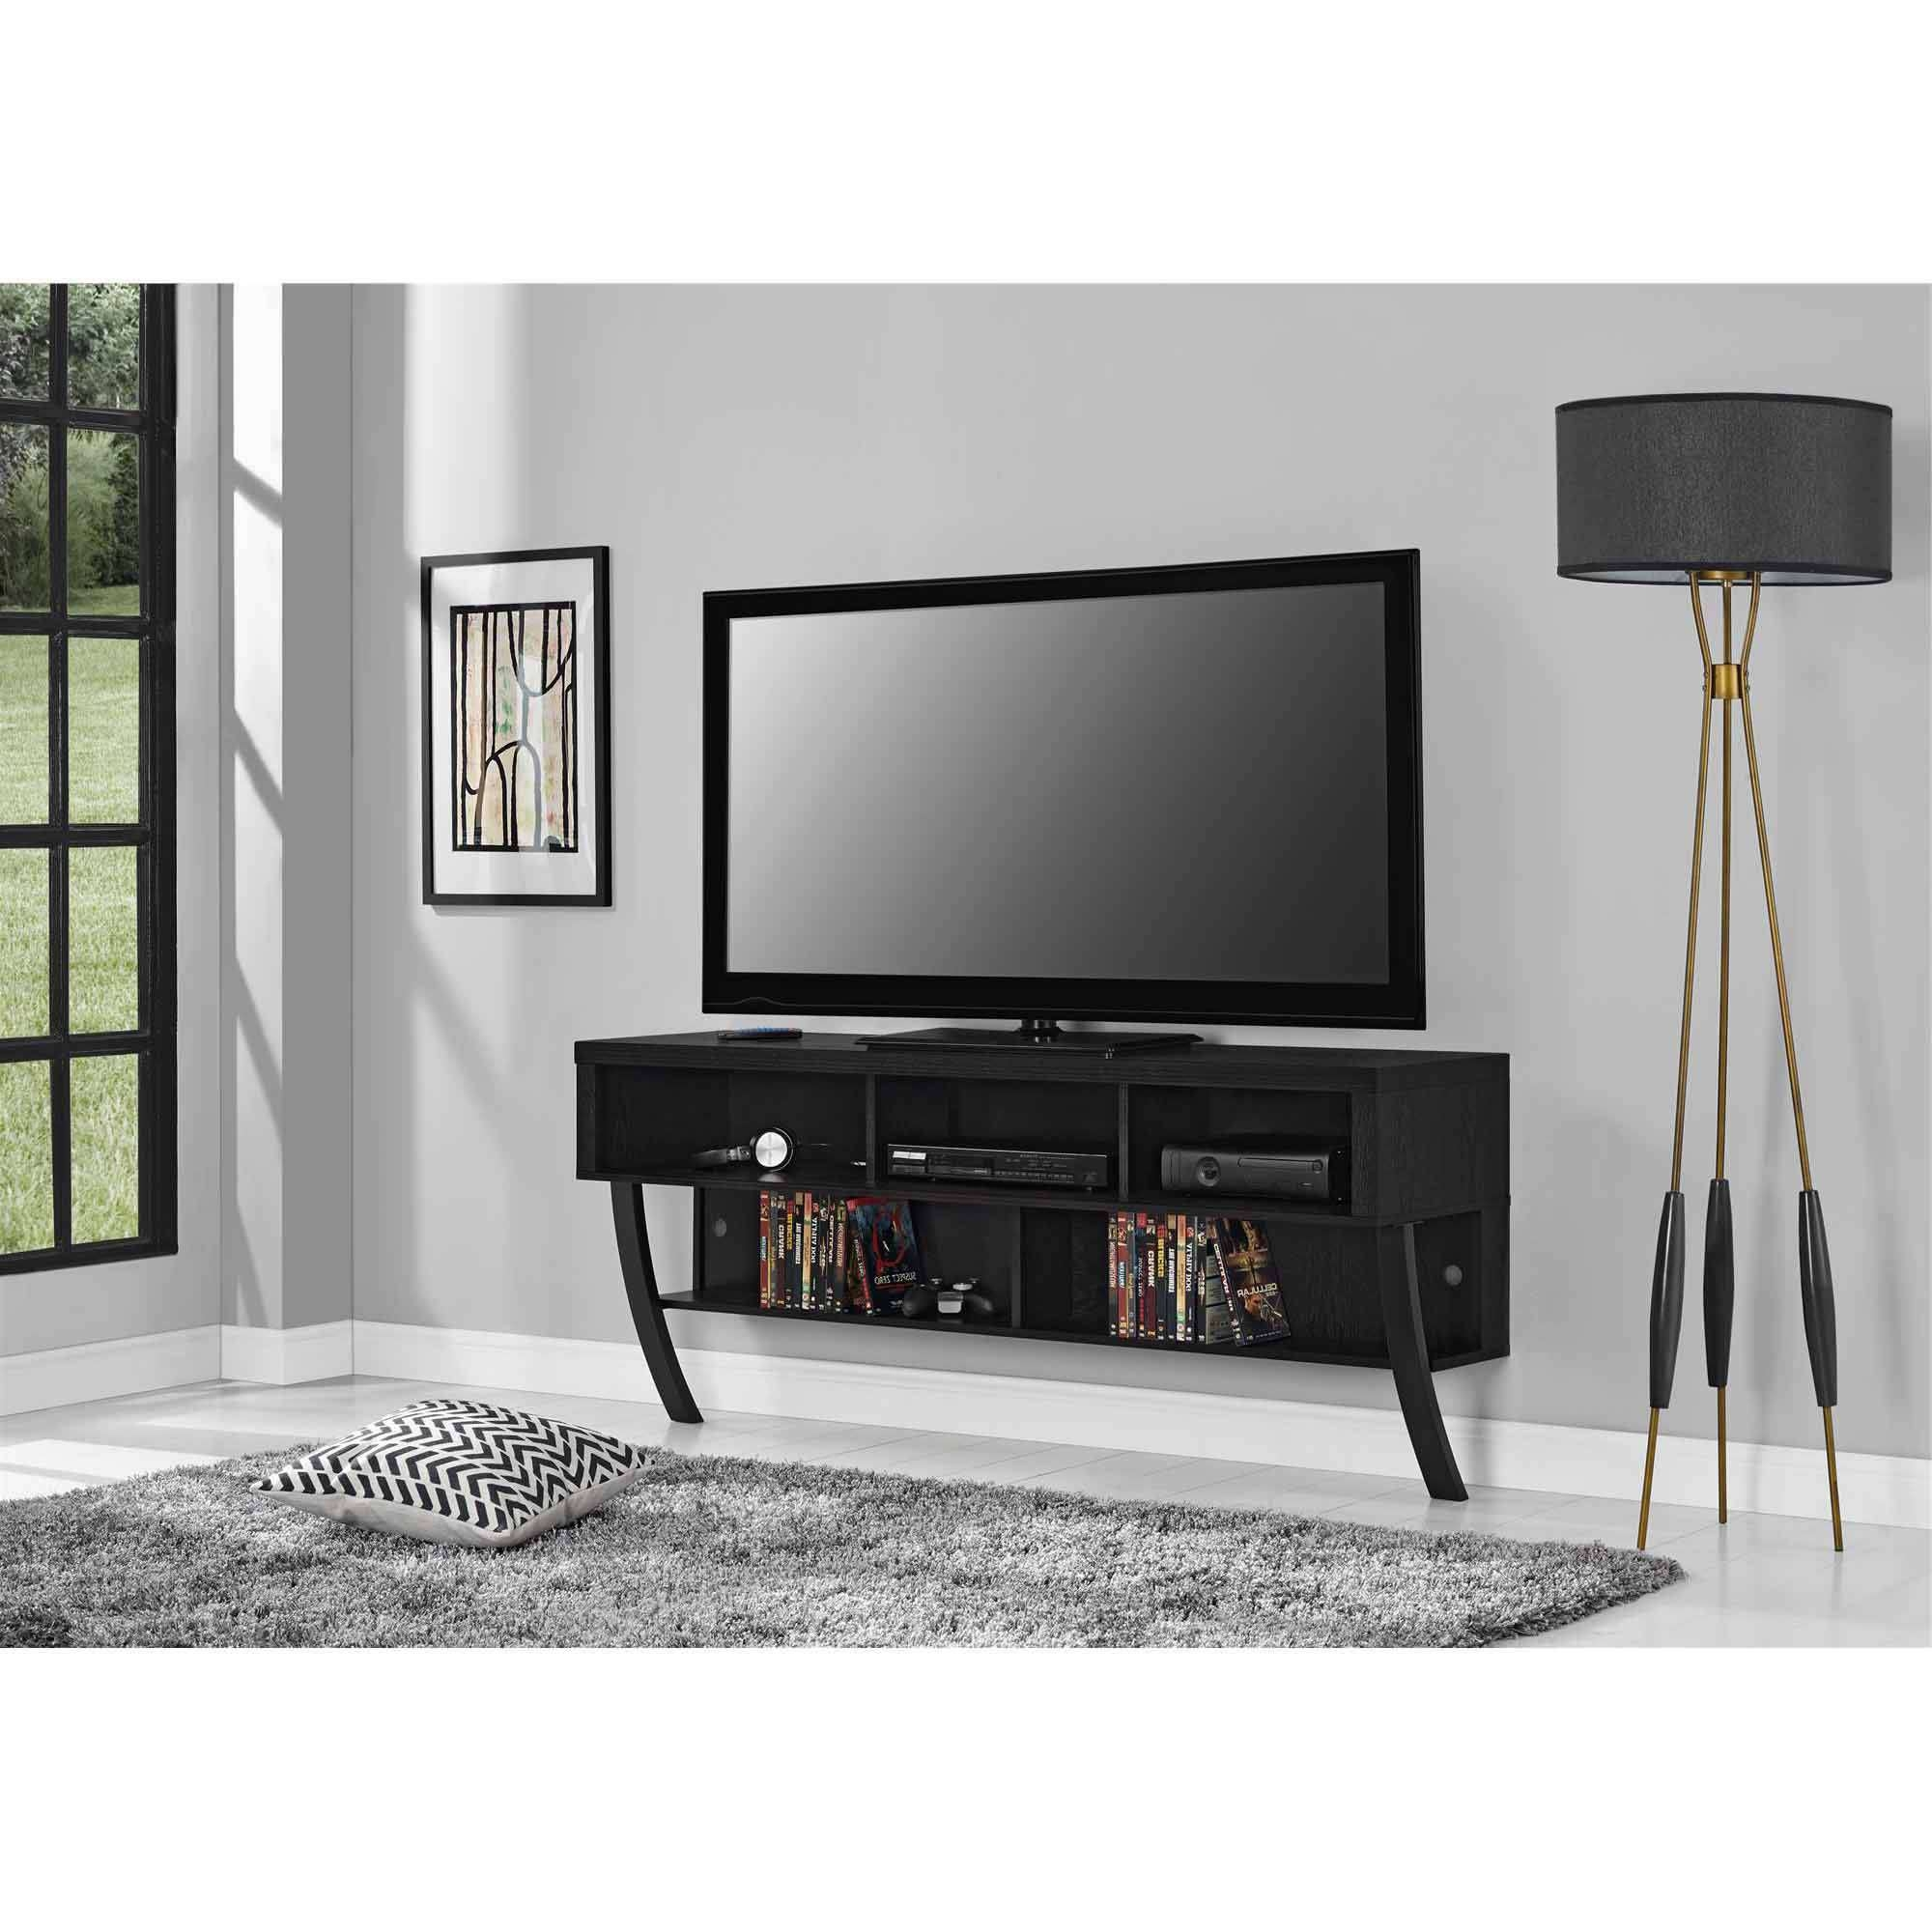 Wall Mount Tv Stands Pertaining To Wall Mounted Tv Stands For Flat Screens (View 10 of 15)